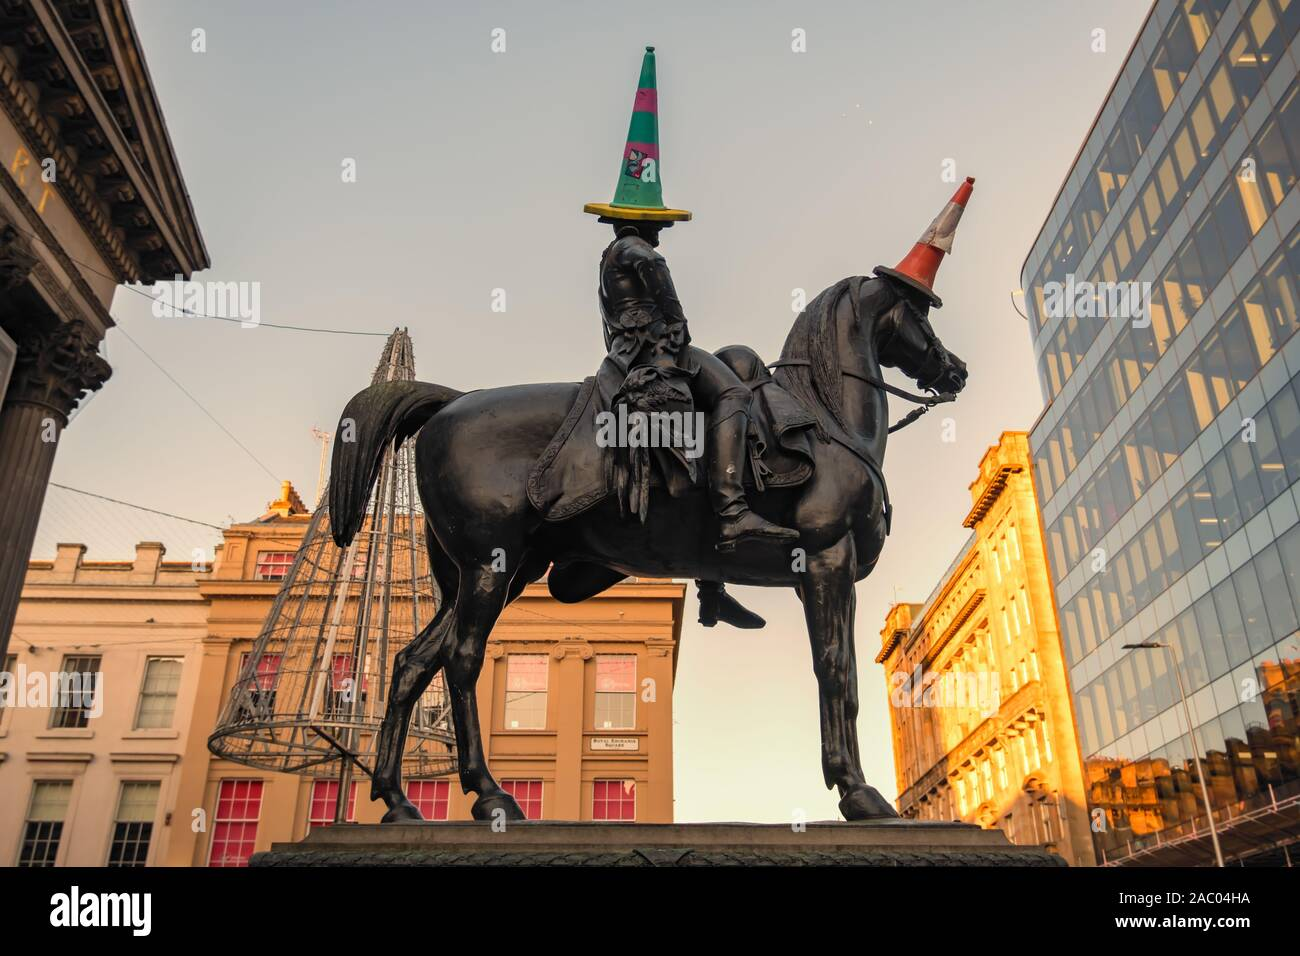 Glasgow, Scotland, UK. 29th Nov, 2019. UK Weather. The statue of the Duke Of Wellington with a green and red traffic cone on the duke's head and a red and white traffic cone on the head of the war horse Copenhagen. Credit: Skully/Alamy Live News Stock Photo